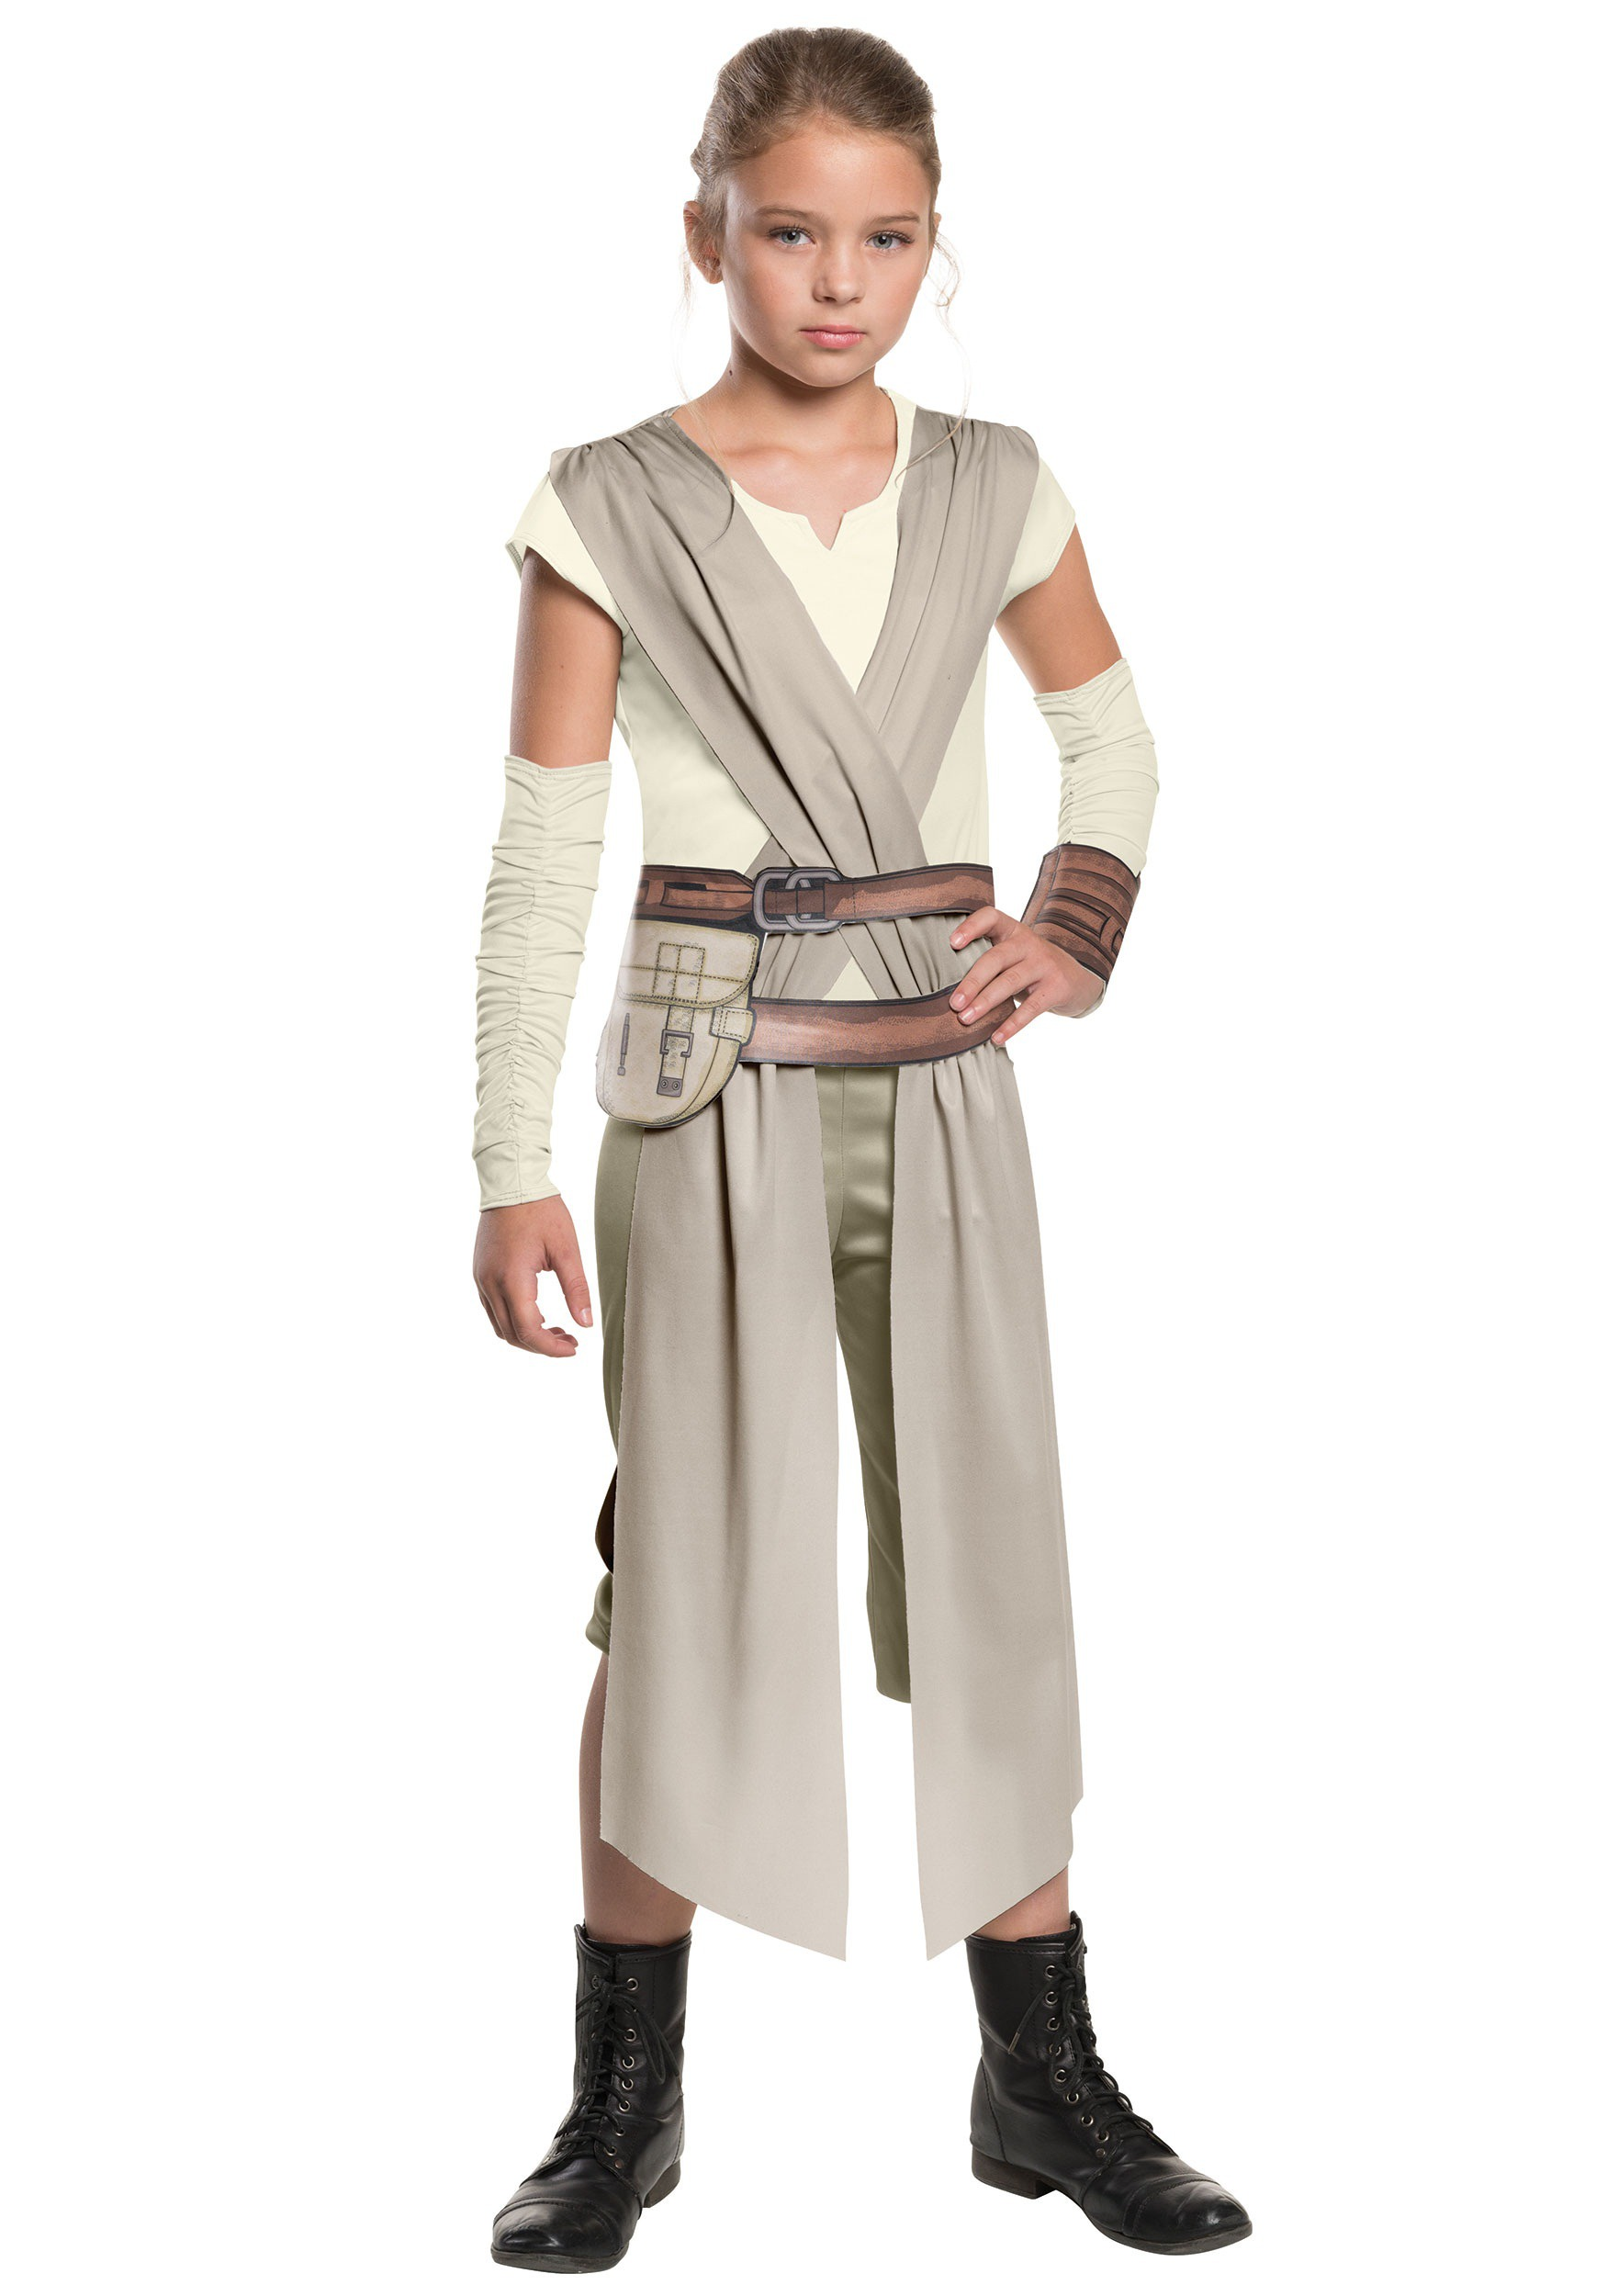 star wars the force awakens costumes - halloweencostumes